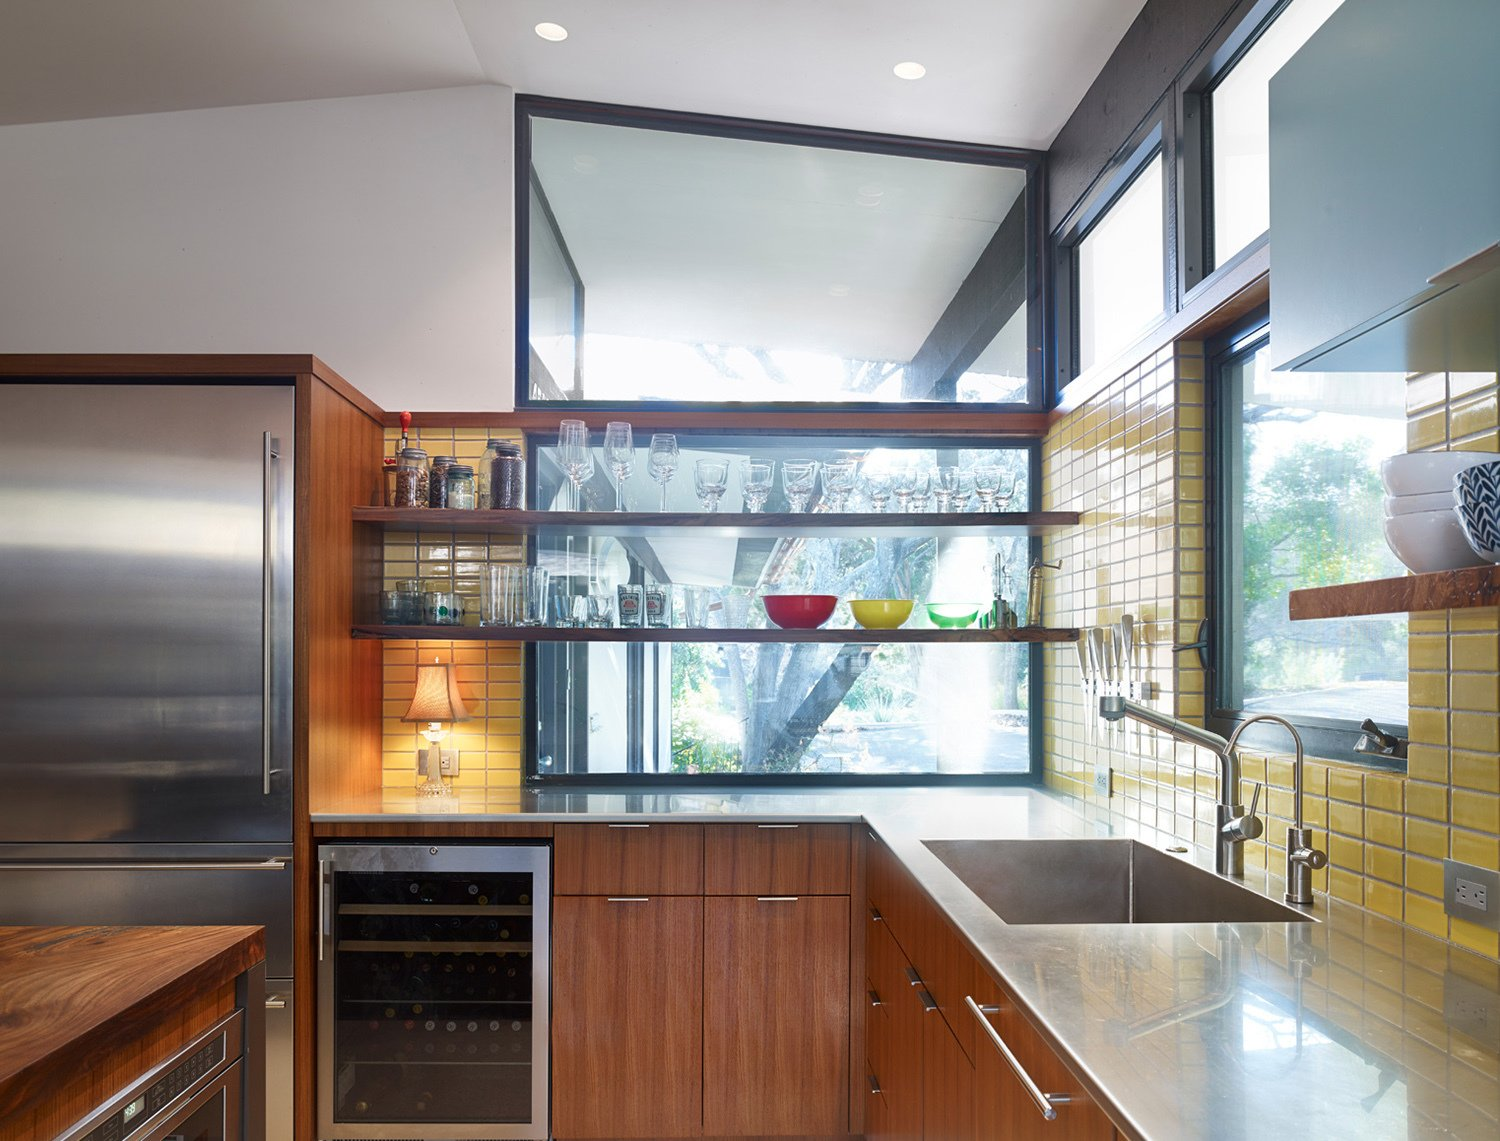 Opening the kitchen to outdoor spaces, a new window with floating shelves for storage looks out into the front yard.  New appliances, stainless steel countertops and an integral sink add utility. Photo by Whit Preston.  Photo 8 of 13 in Midcentury Renovation in Austin